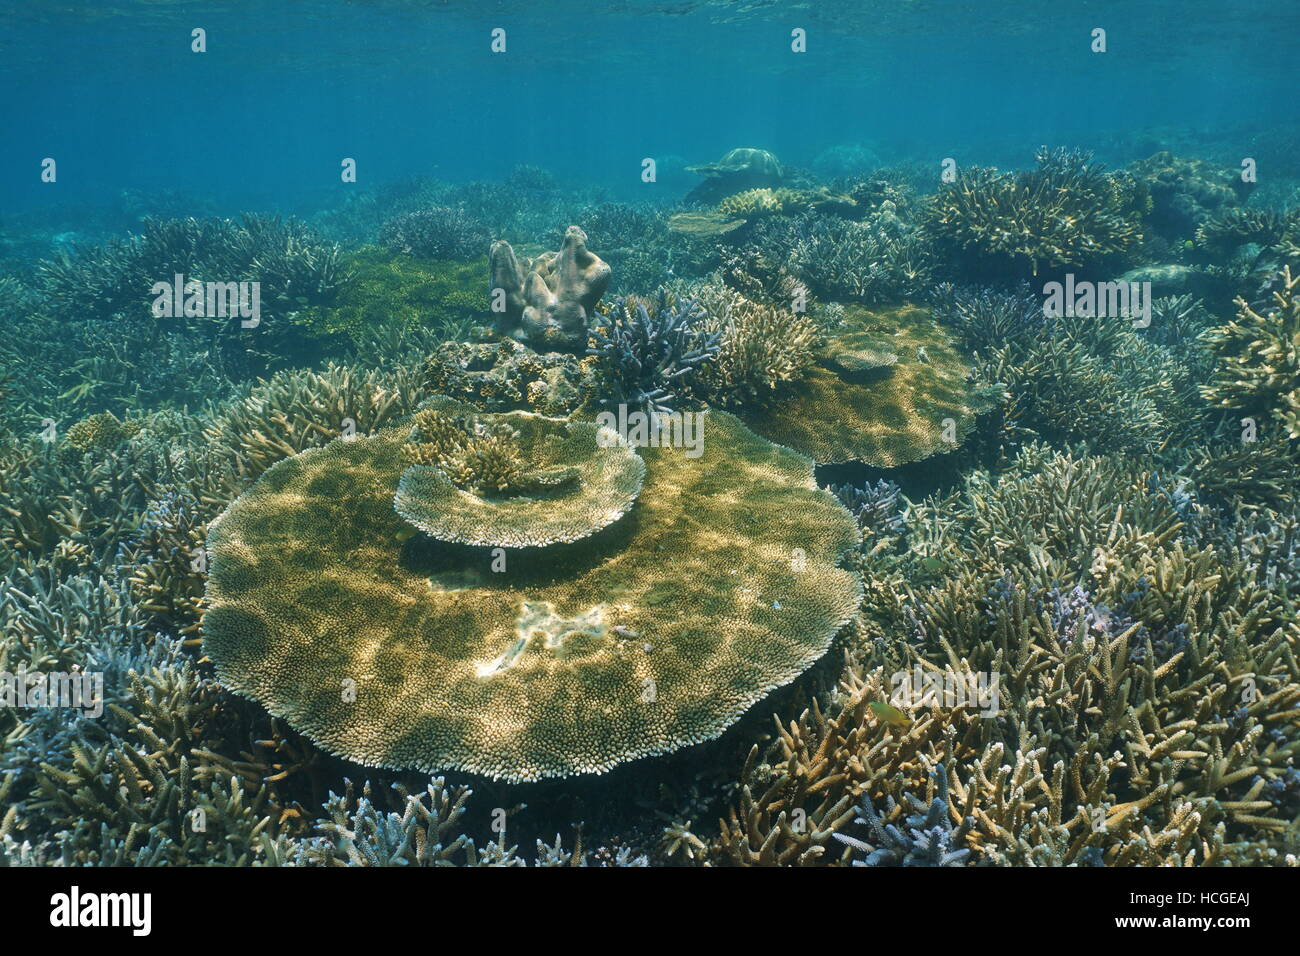 Pristine coral reef underwater with staghorn and table corals, New Caledonia, south Pacific ocean - Stock Image